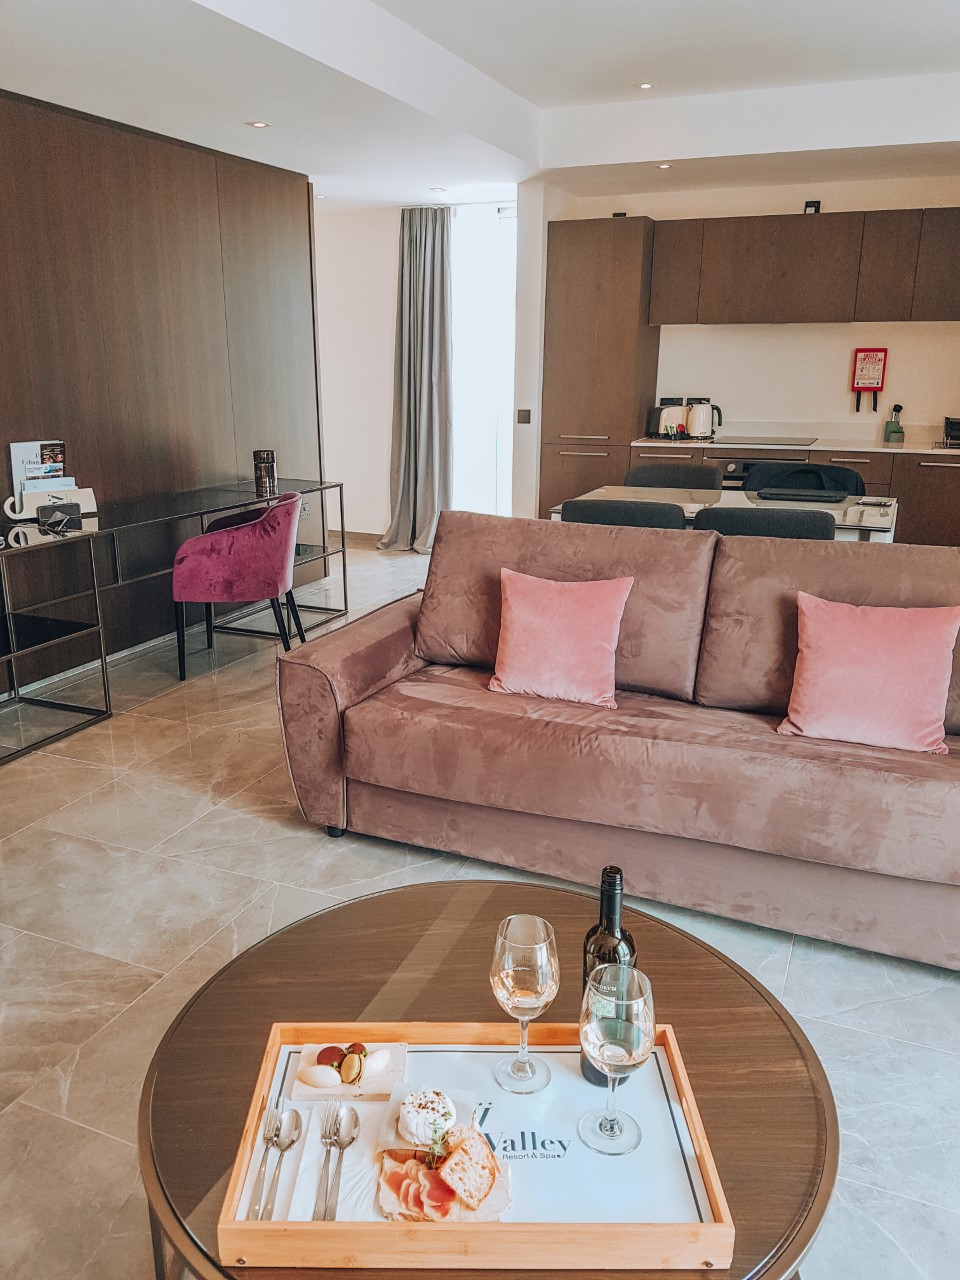 Our Rooms, Suites and Penthouses are Designed for Maximum Comfort With a Luxurious and Sleek Ambience